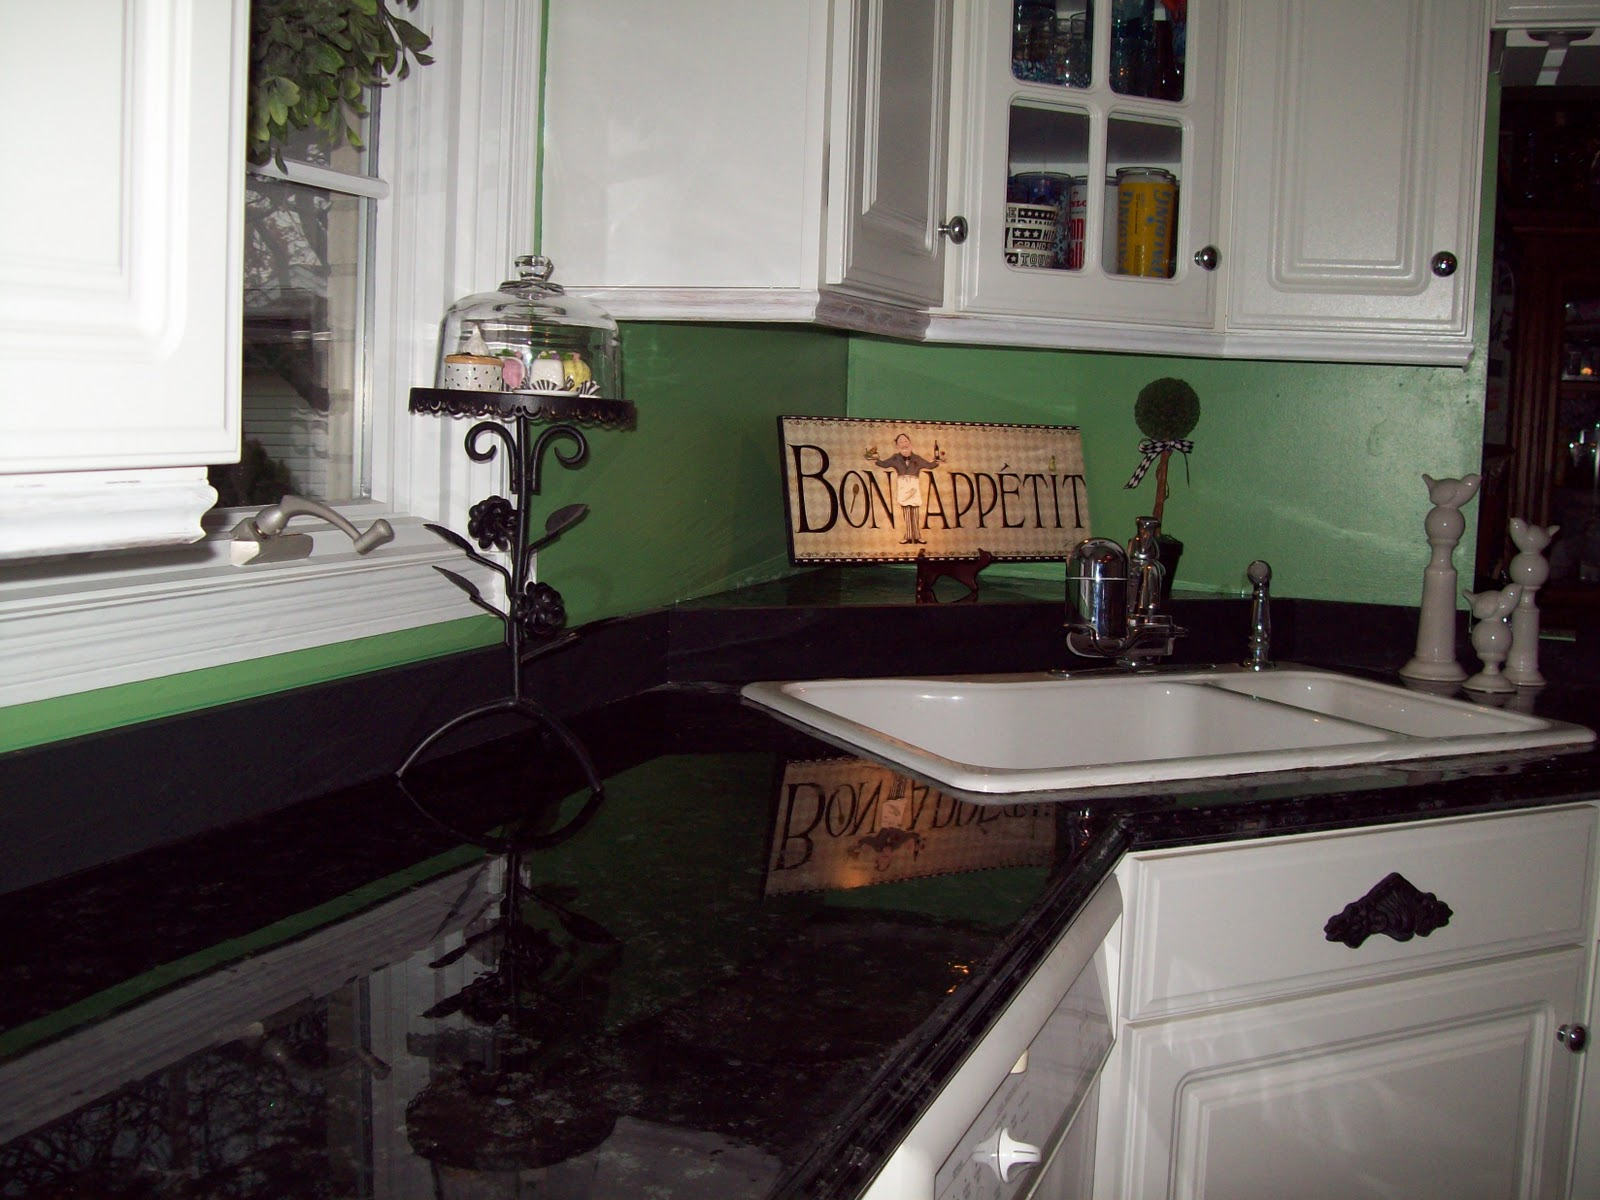 How To Cut A Formica Countertop Remodelaholic Painted Formica Countertop